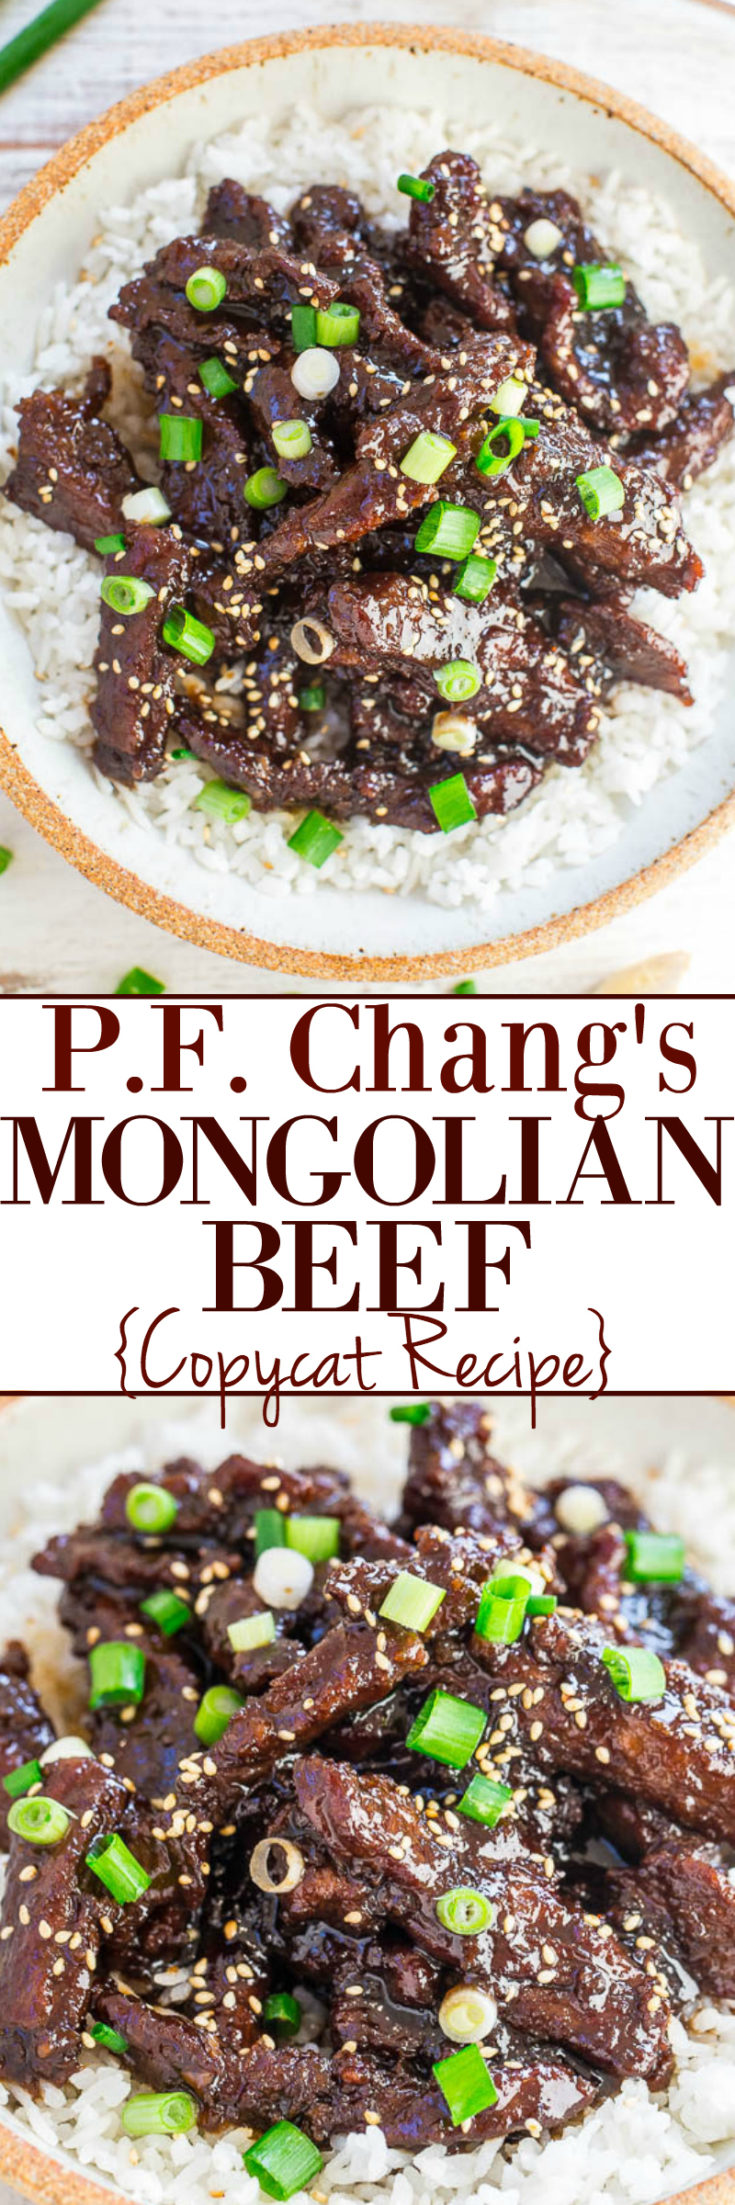 This copycat P.F. Change's Mongolian Beef recipe comes together in 20 minutes and makes for a great weeknight meal! It's quick, easy, and delicious! #pfchangs #copycat #copycatrecipe #asian #asianrecipe #mongoian #beef #easyrecipe